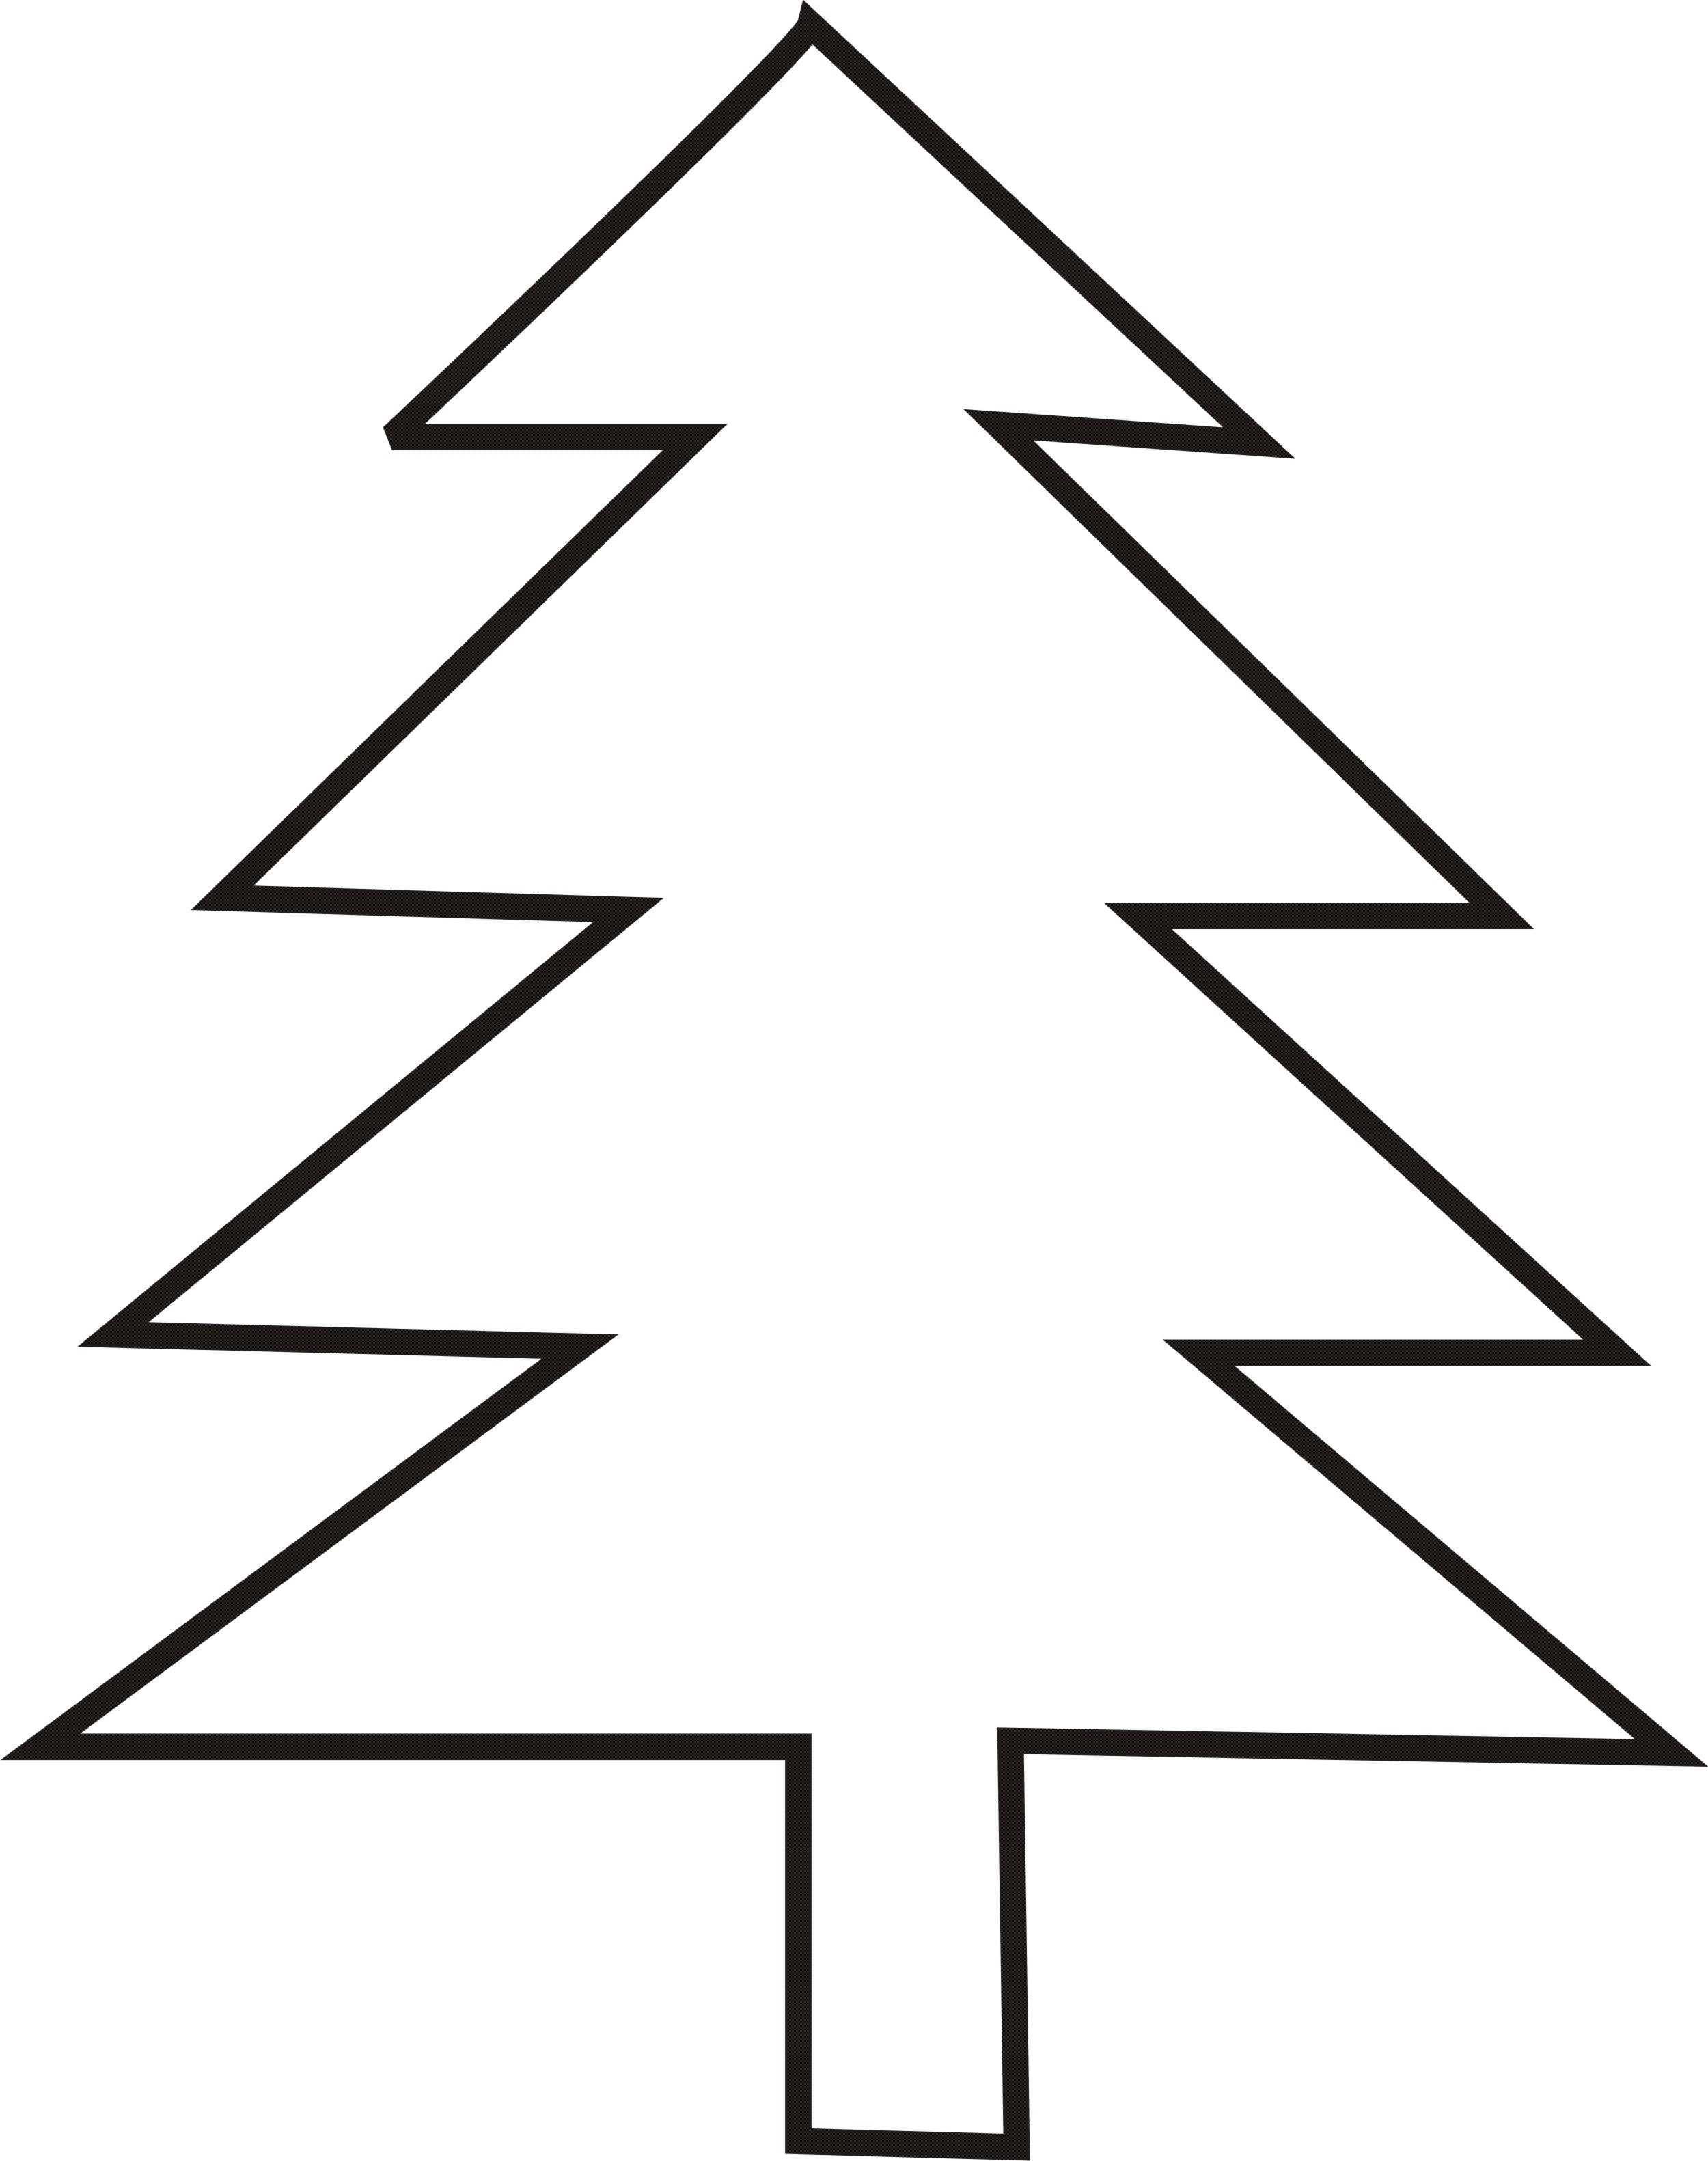 Free Christmas Tree Outlines, Download Free Clip Art, Free